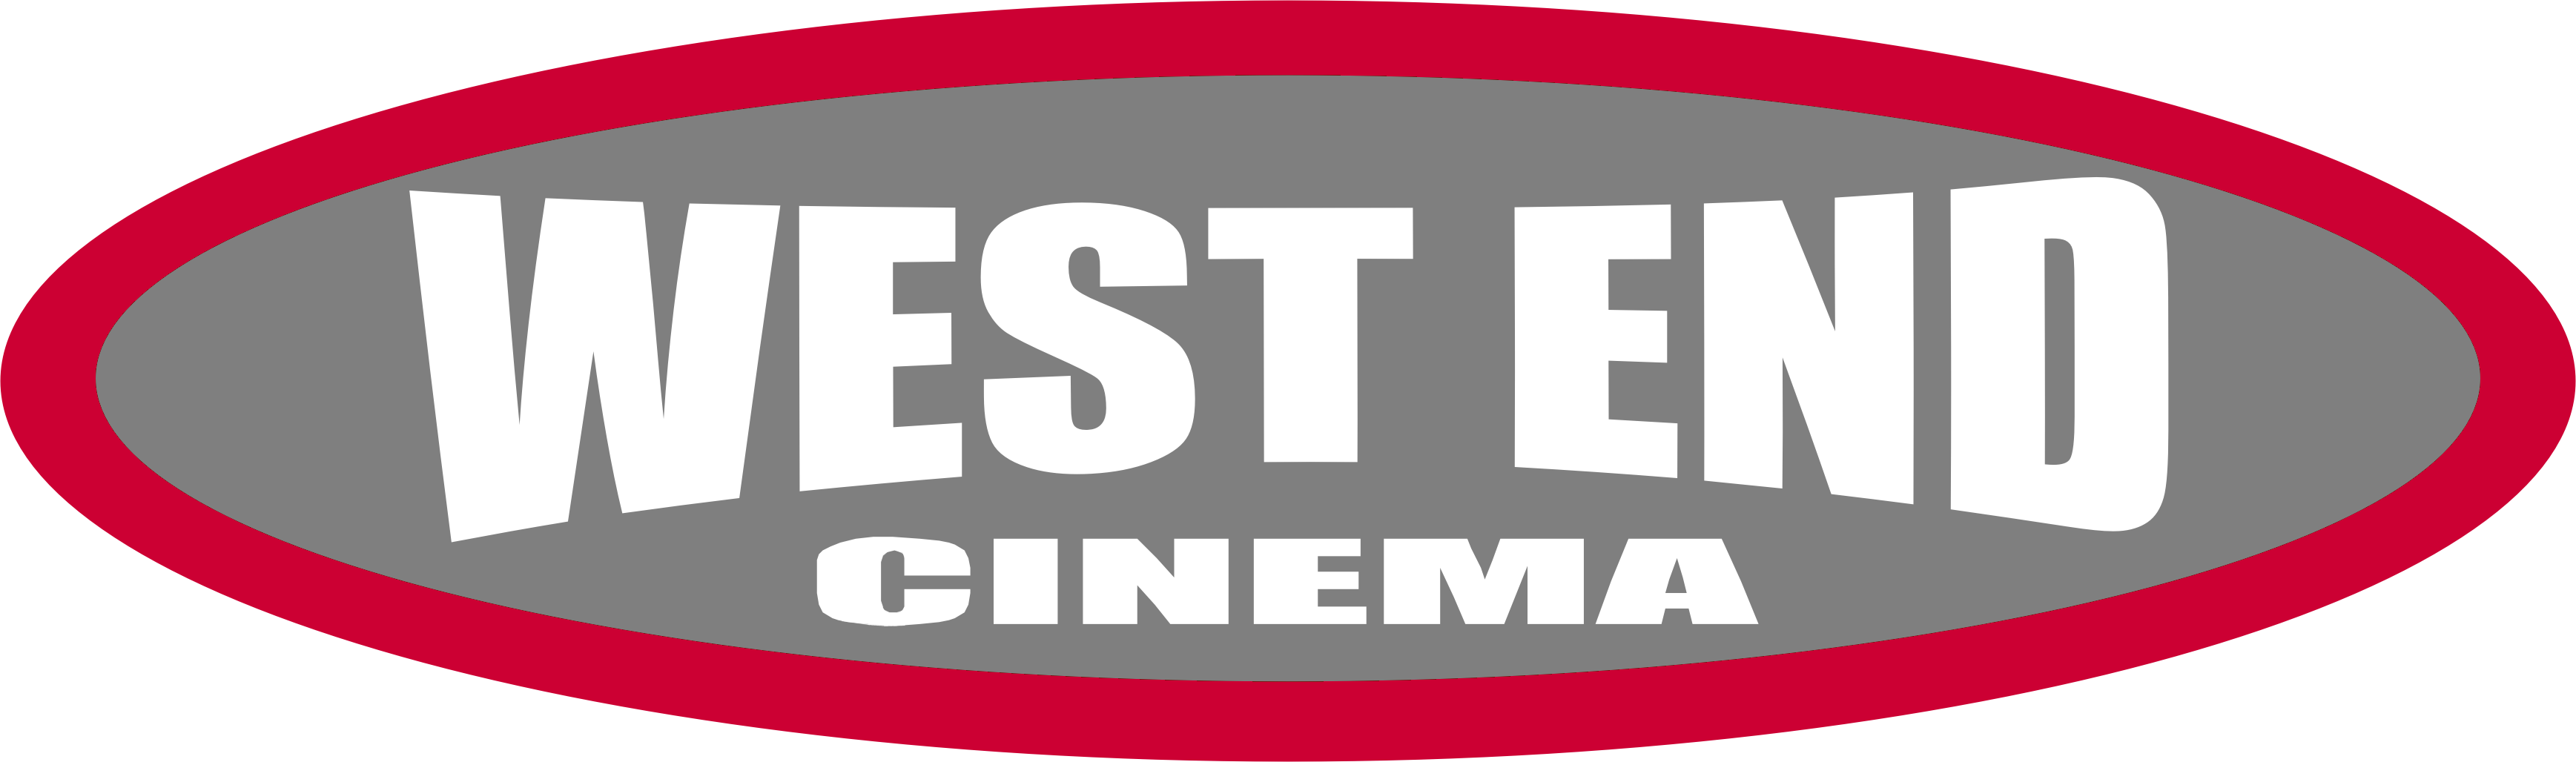 End clipart cinema Cinema West logo End